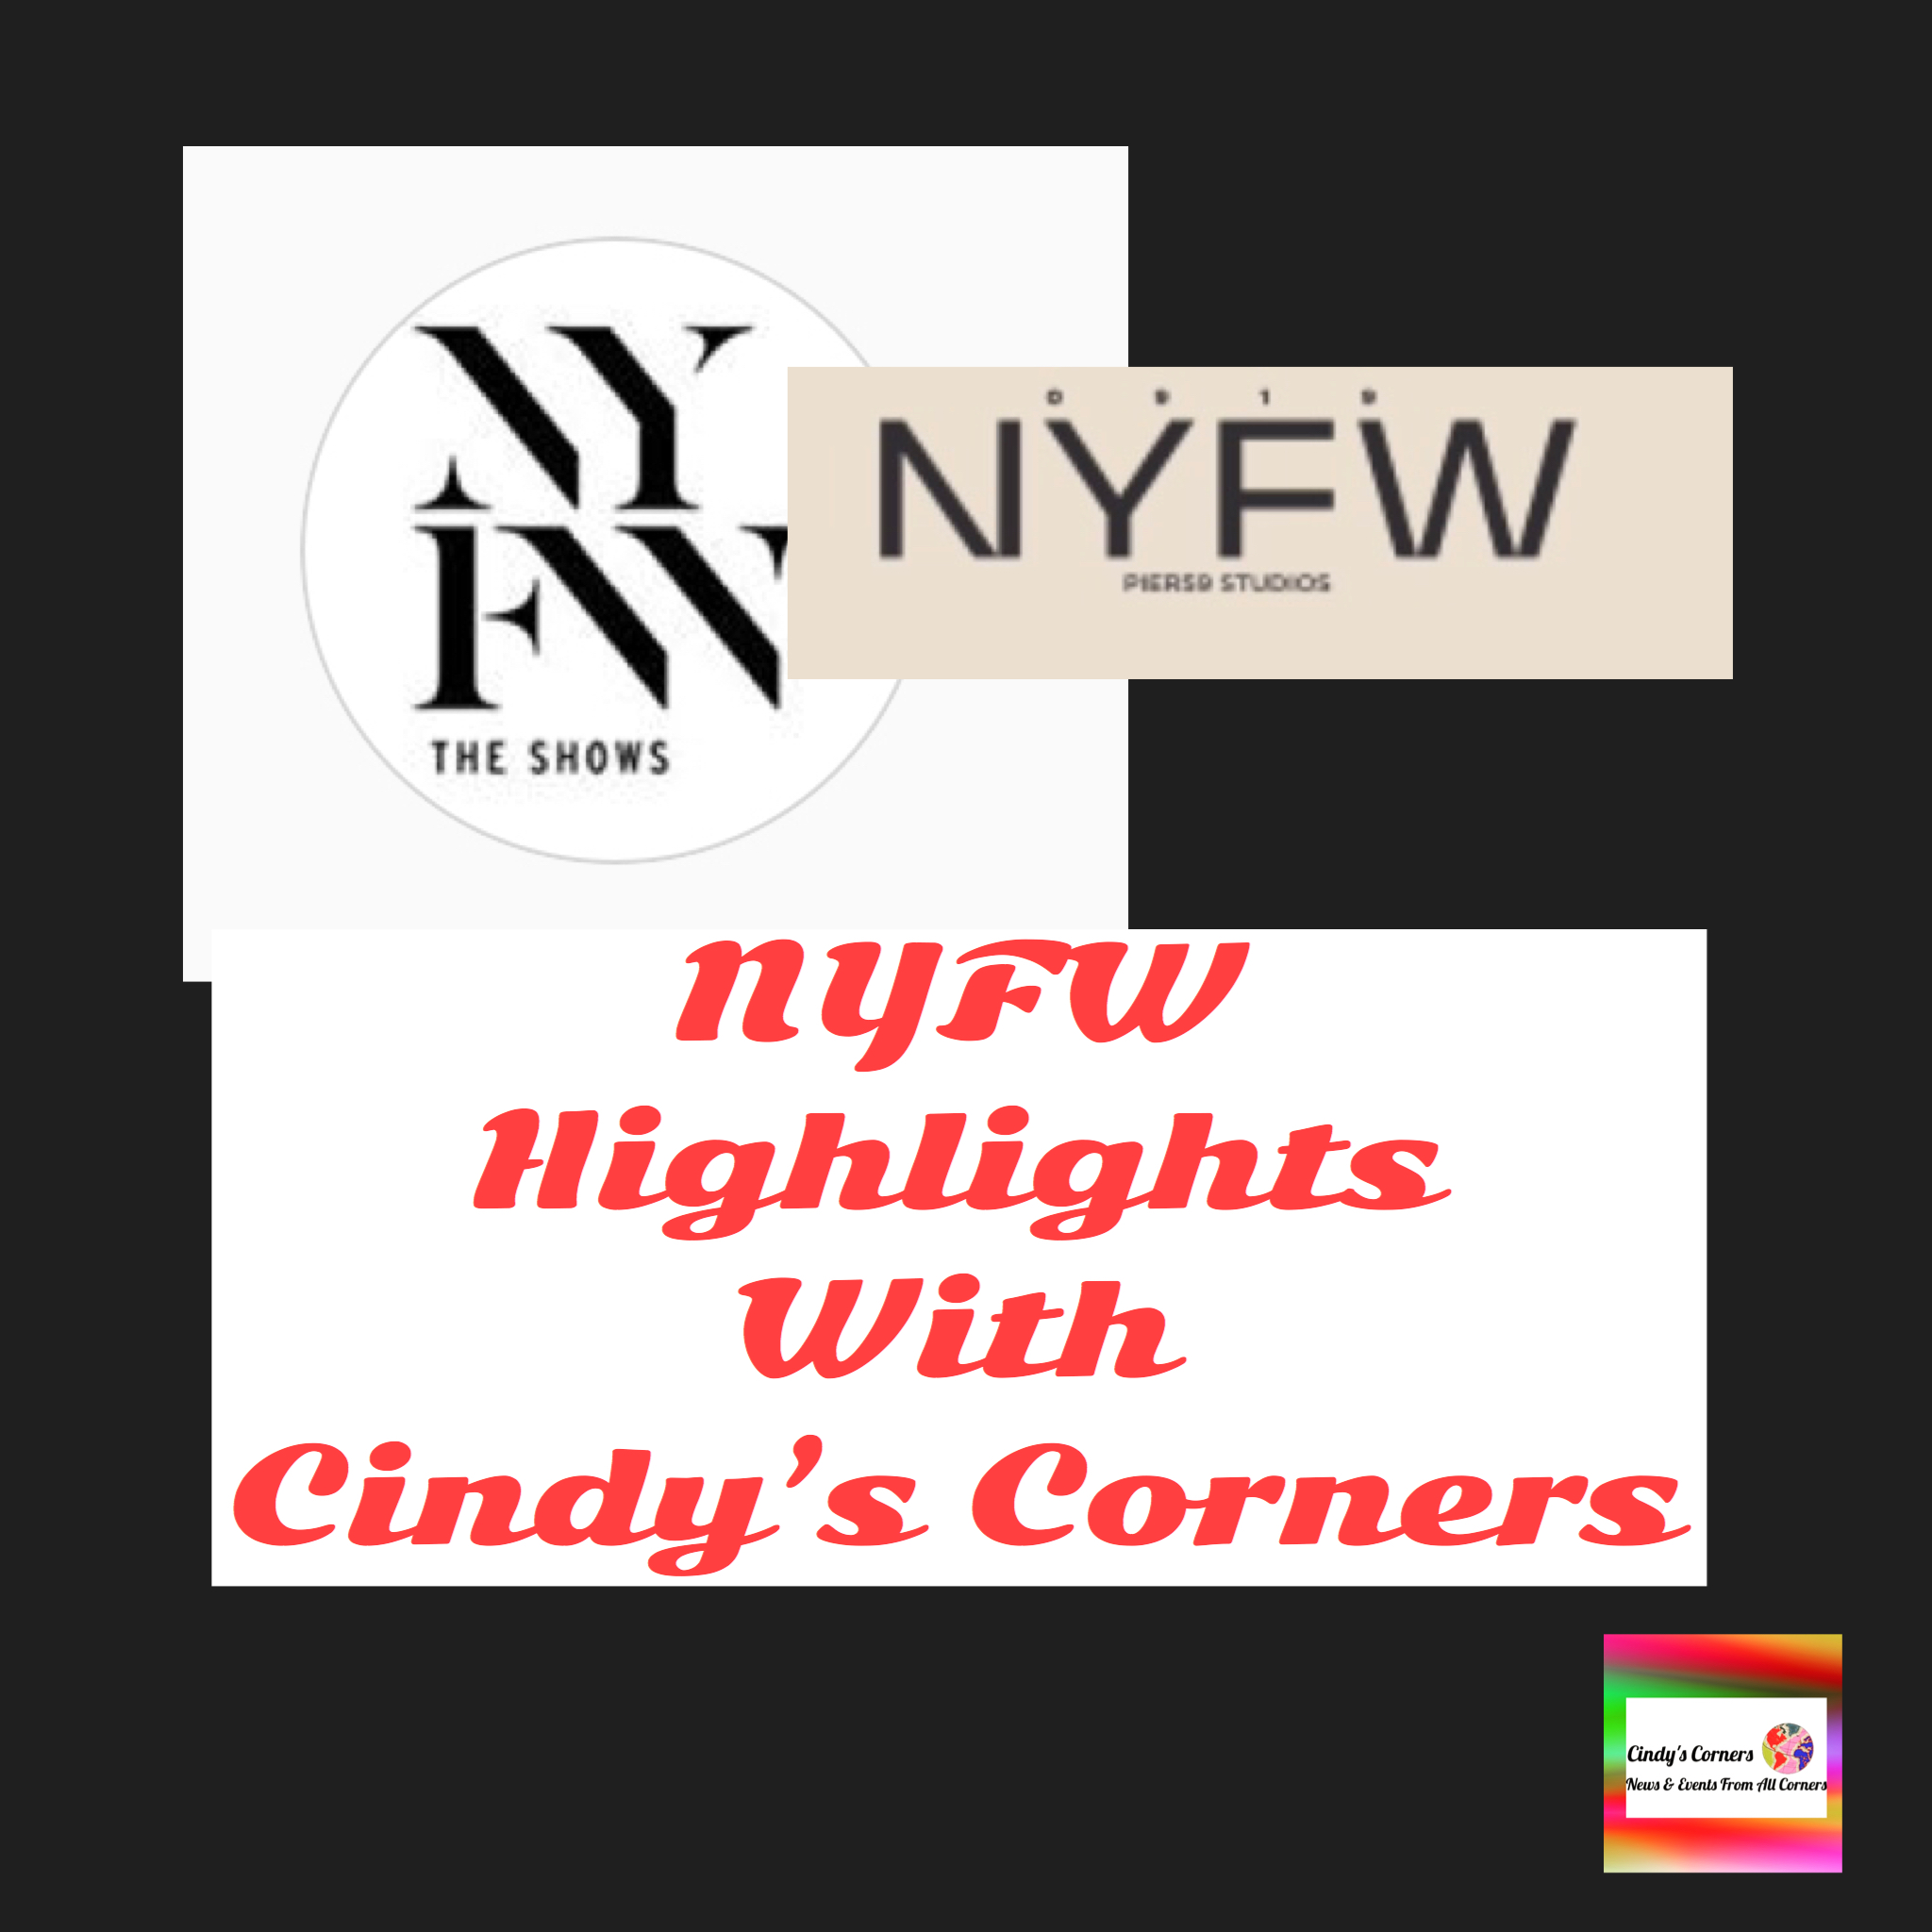 Bottled Water Recall List 2020.Nyfw S S 2020 Highlights With Cindy S Corners Cindy Grosz